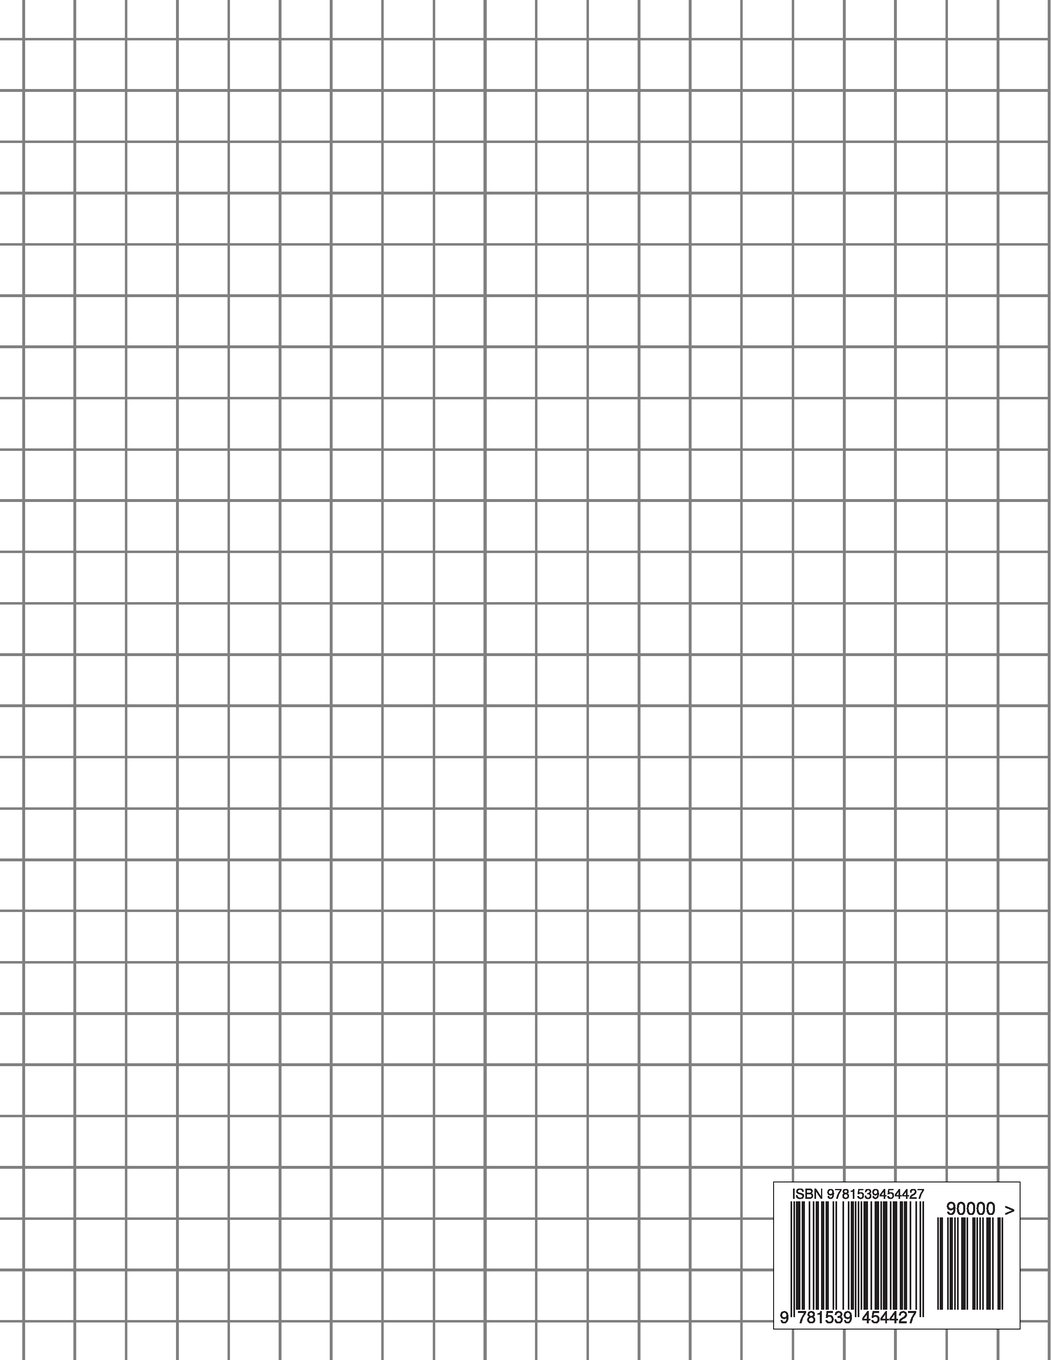 worksheet Graph Papaer graph paper notebook 1 cm squares metric 120 pages and more 9781539454427 amazon com books